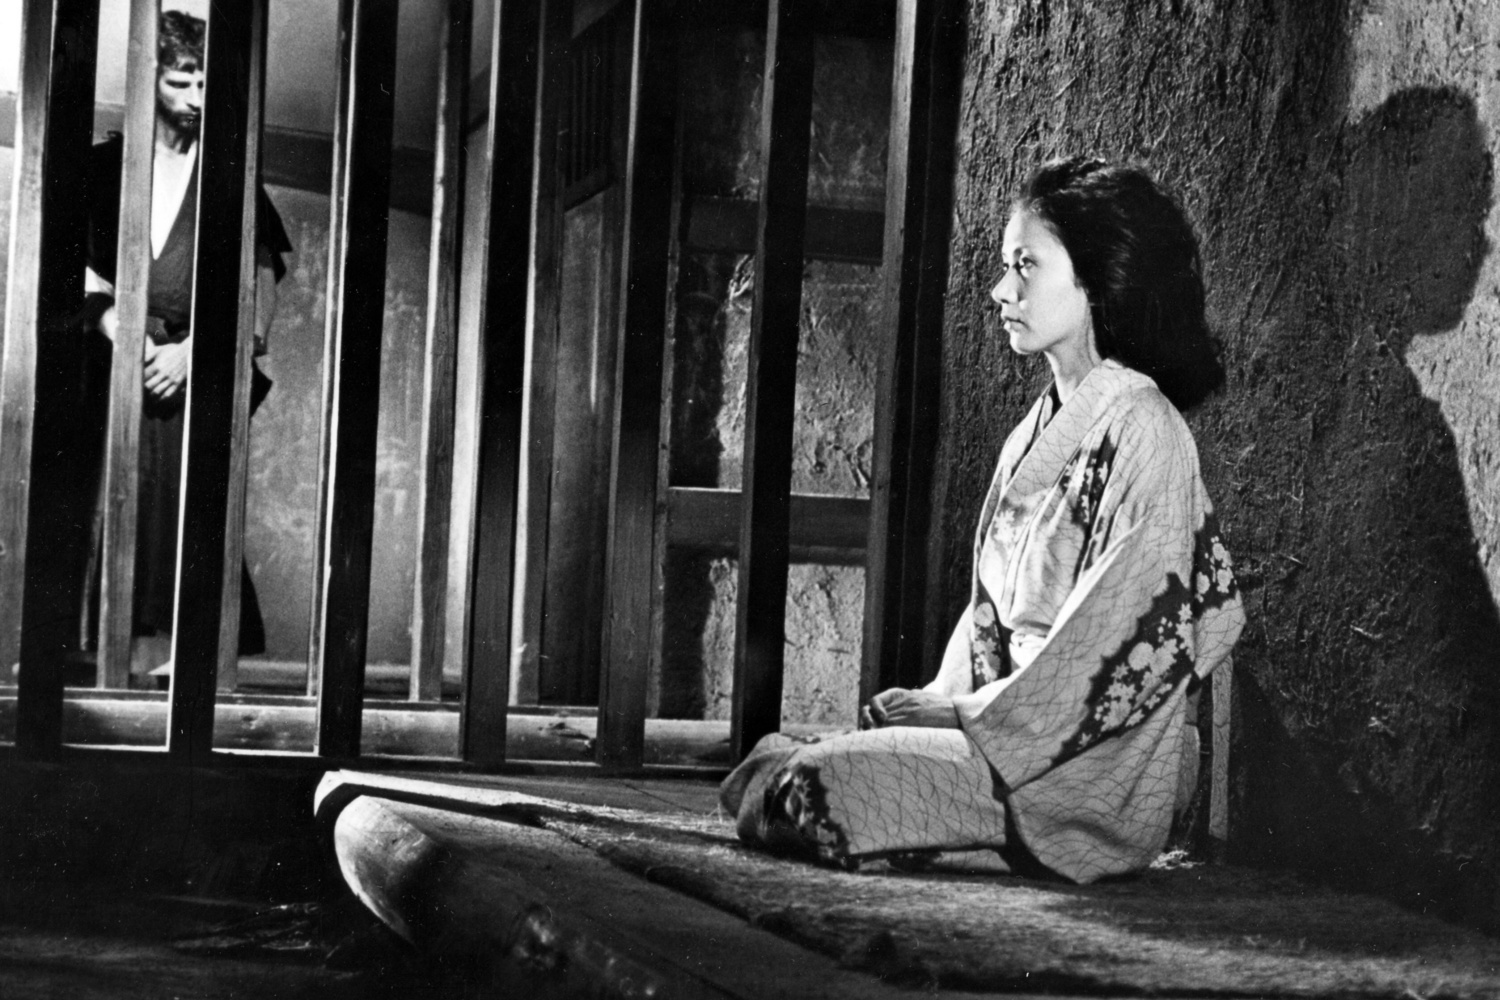 Chinmoku (Silence). 1971. Japan. Directed and written by Masahiro Shinoda. With David Lampson, Mako Iwamatsu, Dan Kenny. Courtesy Photofest